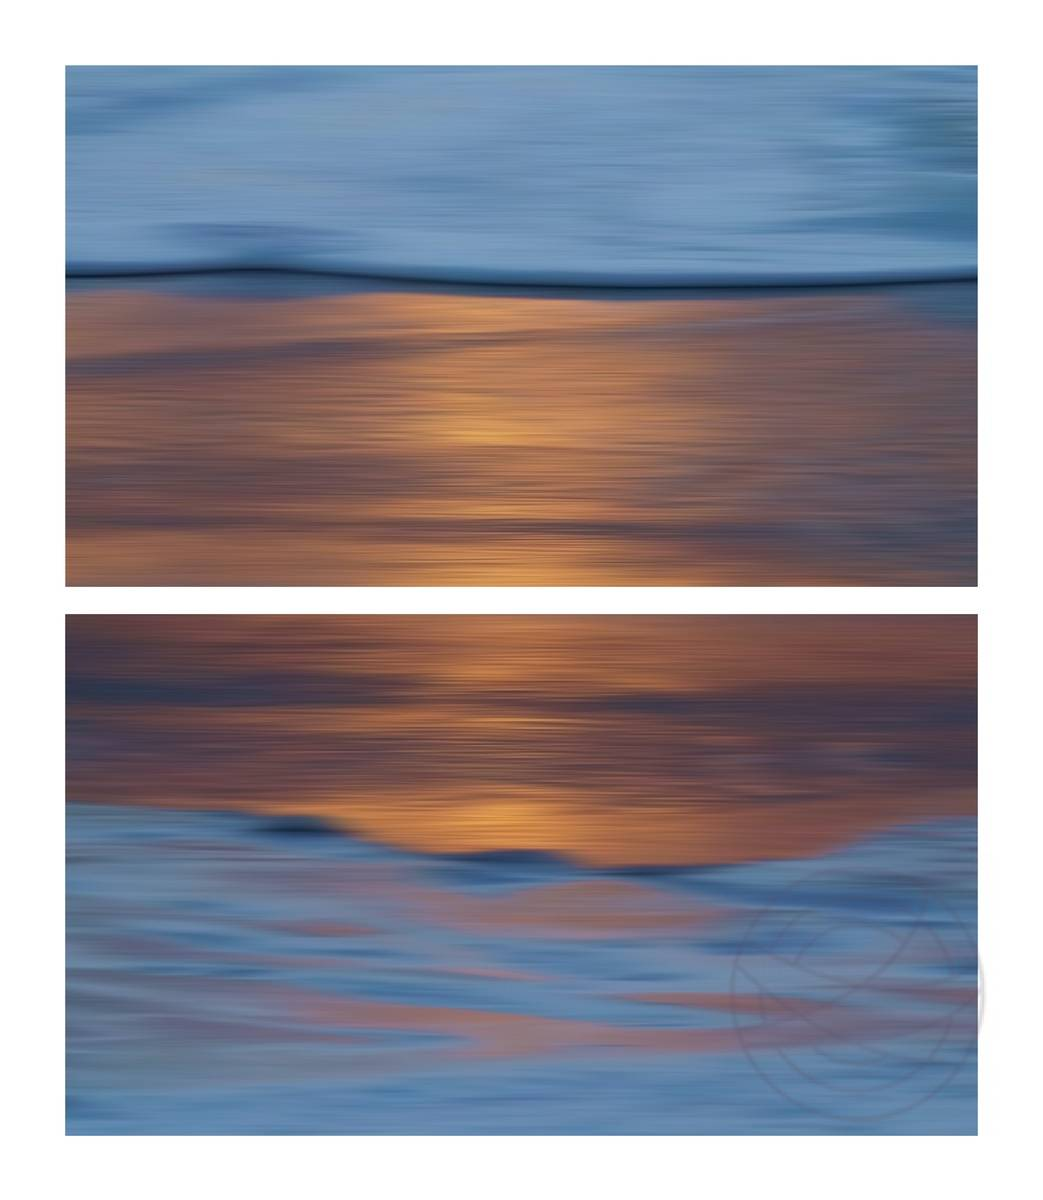 Submerged - A beautiful autumn evening, enjoying a sunset over the sea and looking at the surf, it's as if the foam of the breaking waves brings the colors to land, where they then submerge in the cool, wet sand.  - Abstract realistic fine art seascape photography by Jacob Berghoef